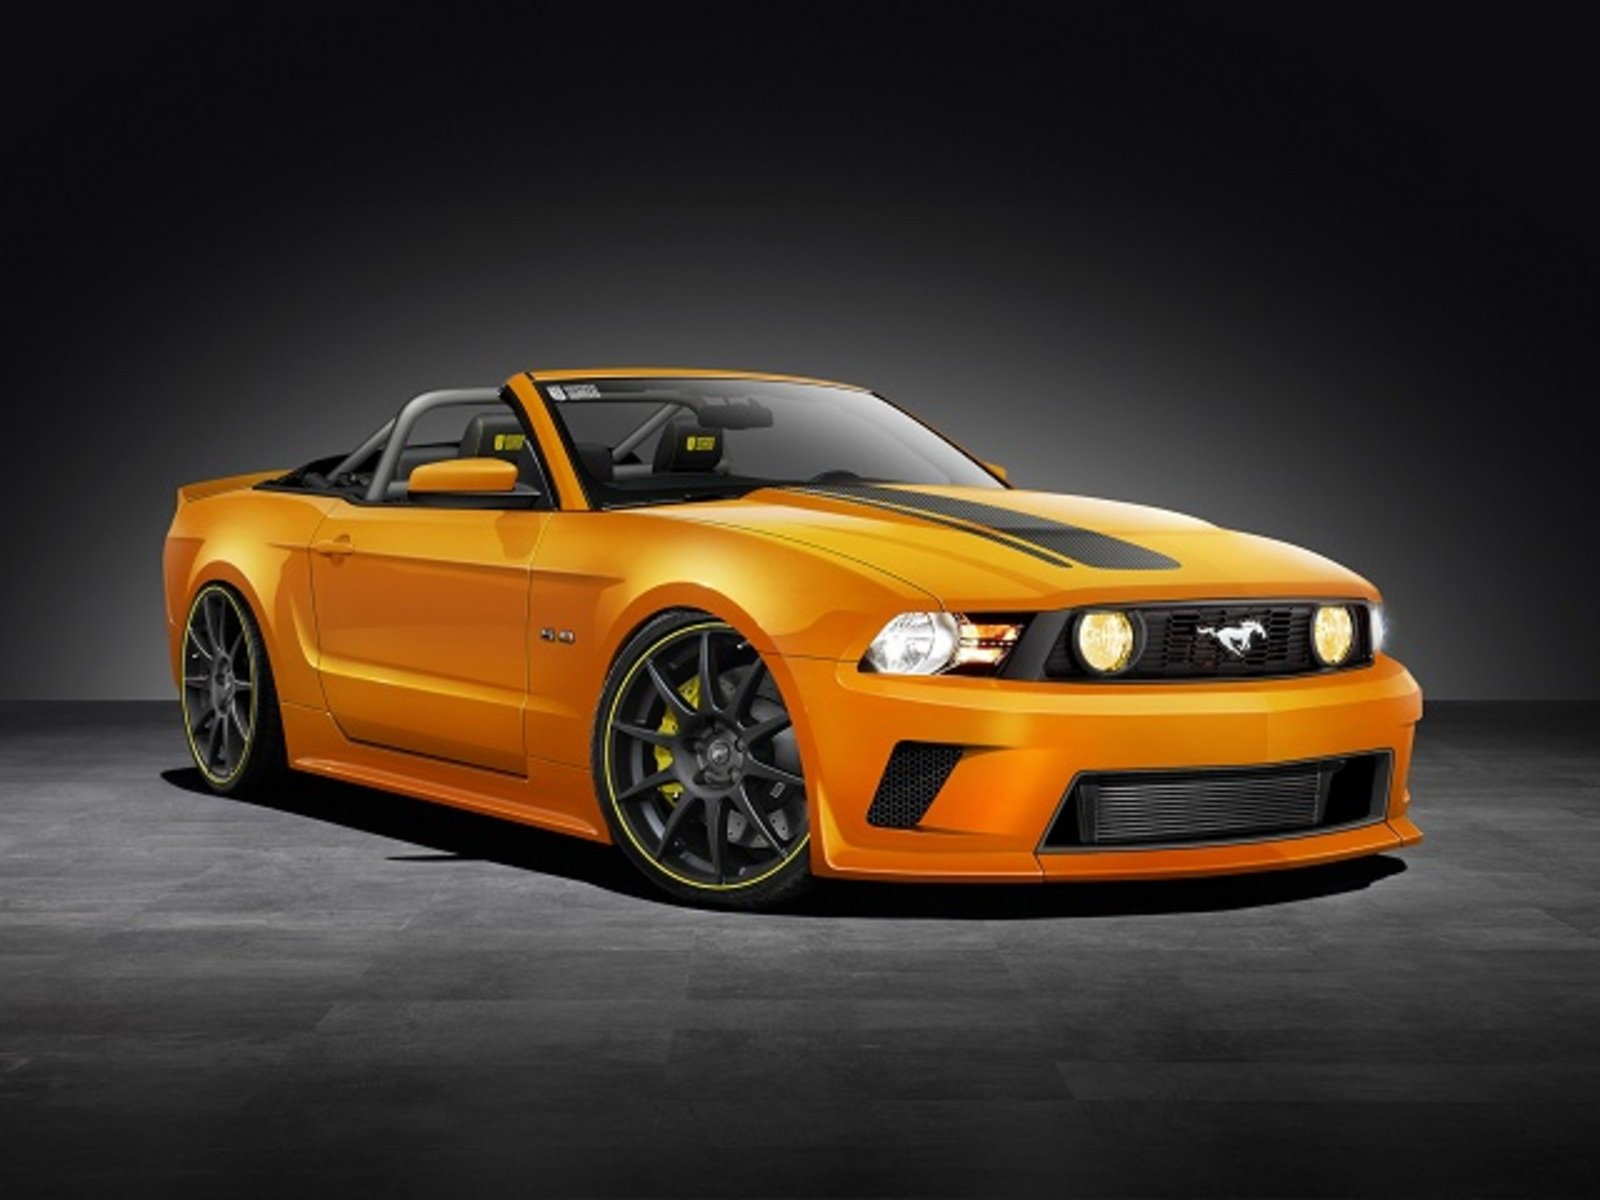 2012 ford mustang gt 5 0 tjin edition review top speed. Black Bedroom Furniture Sets. Home Design Ideas